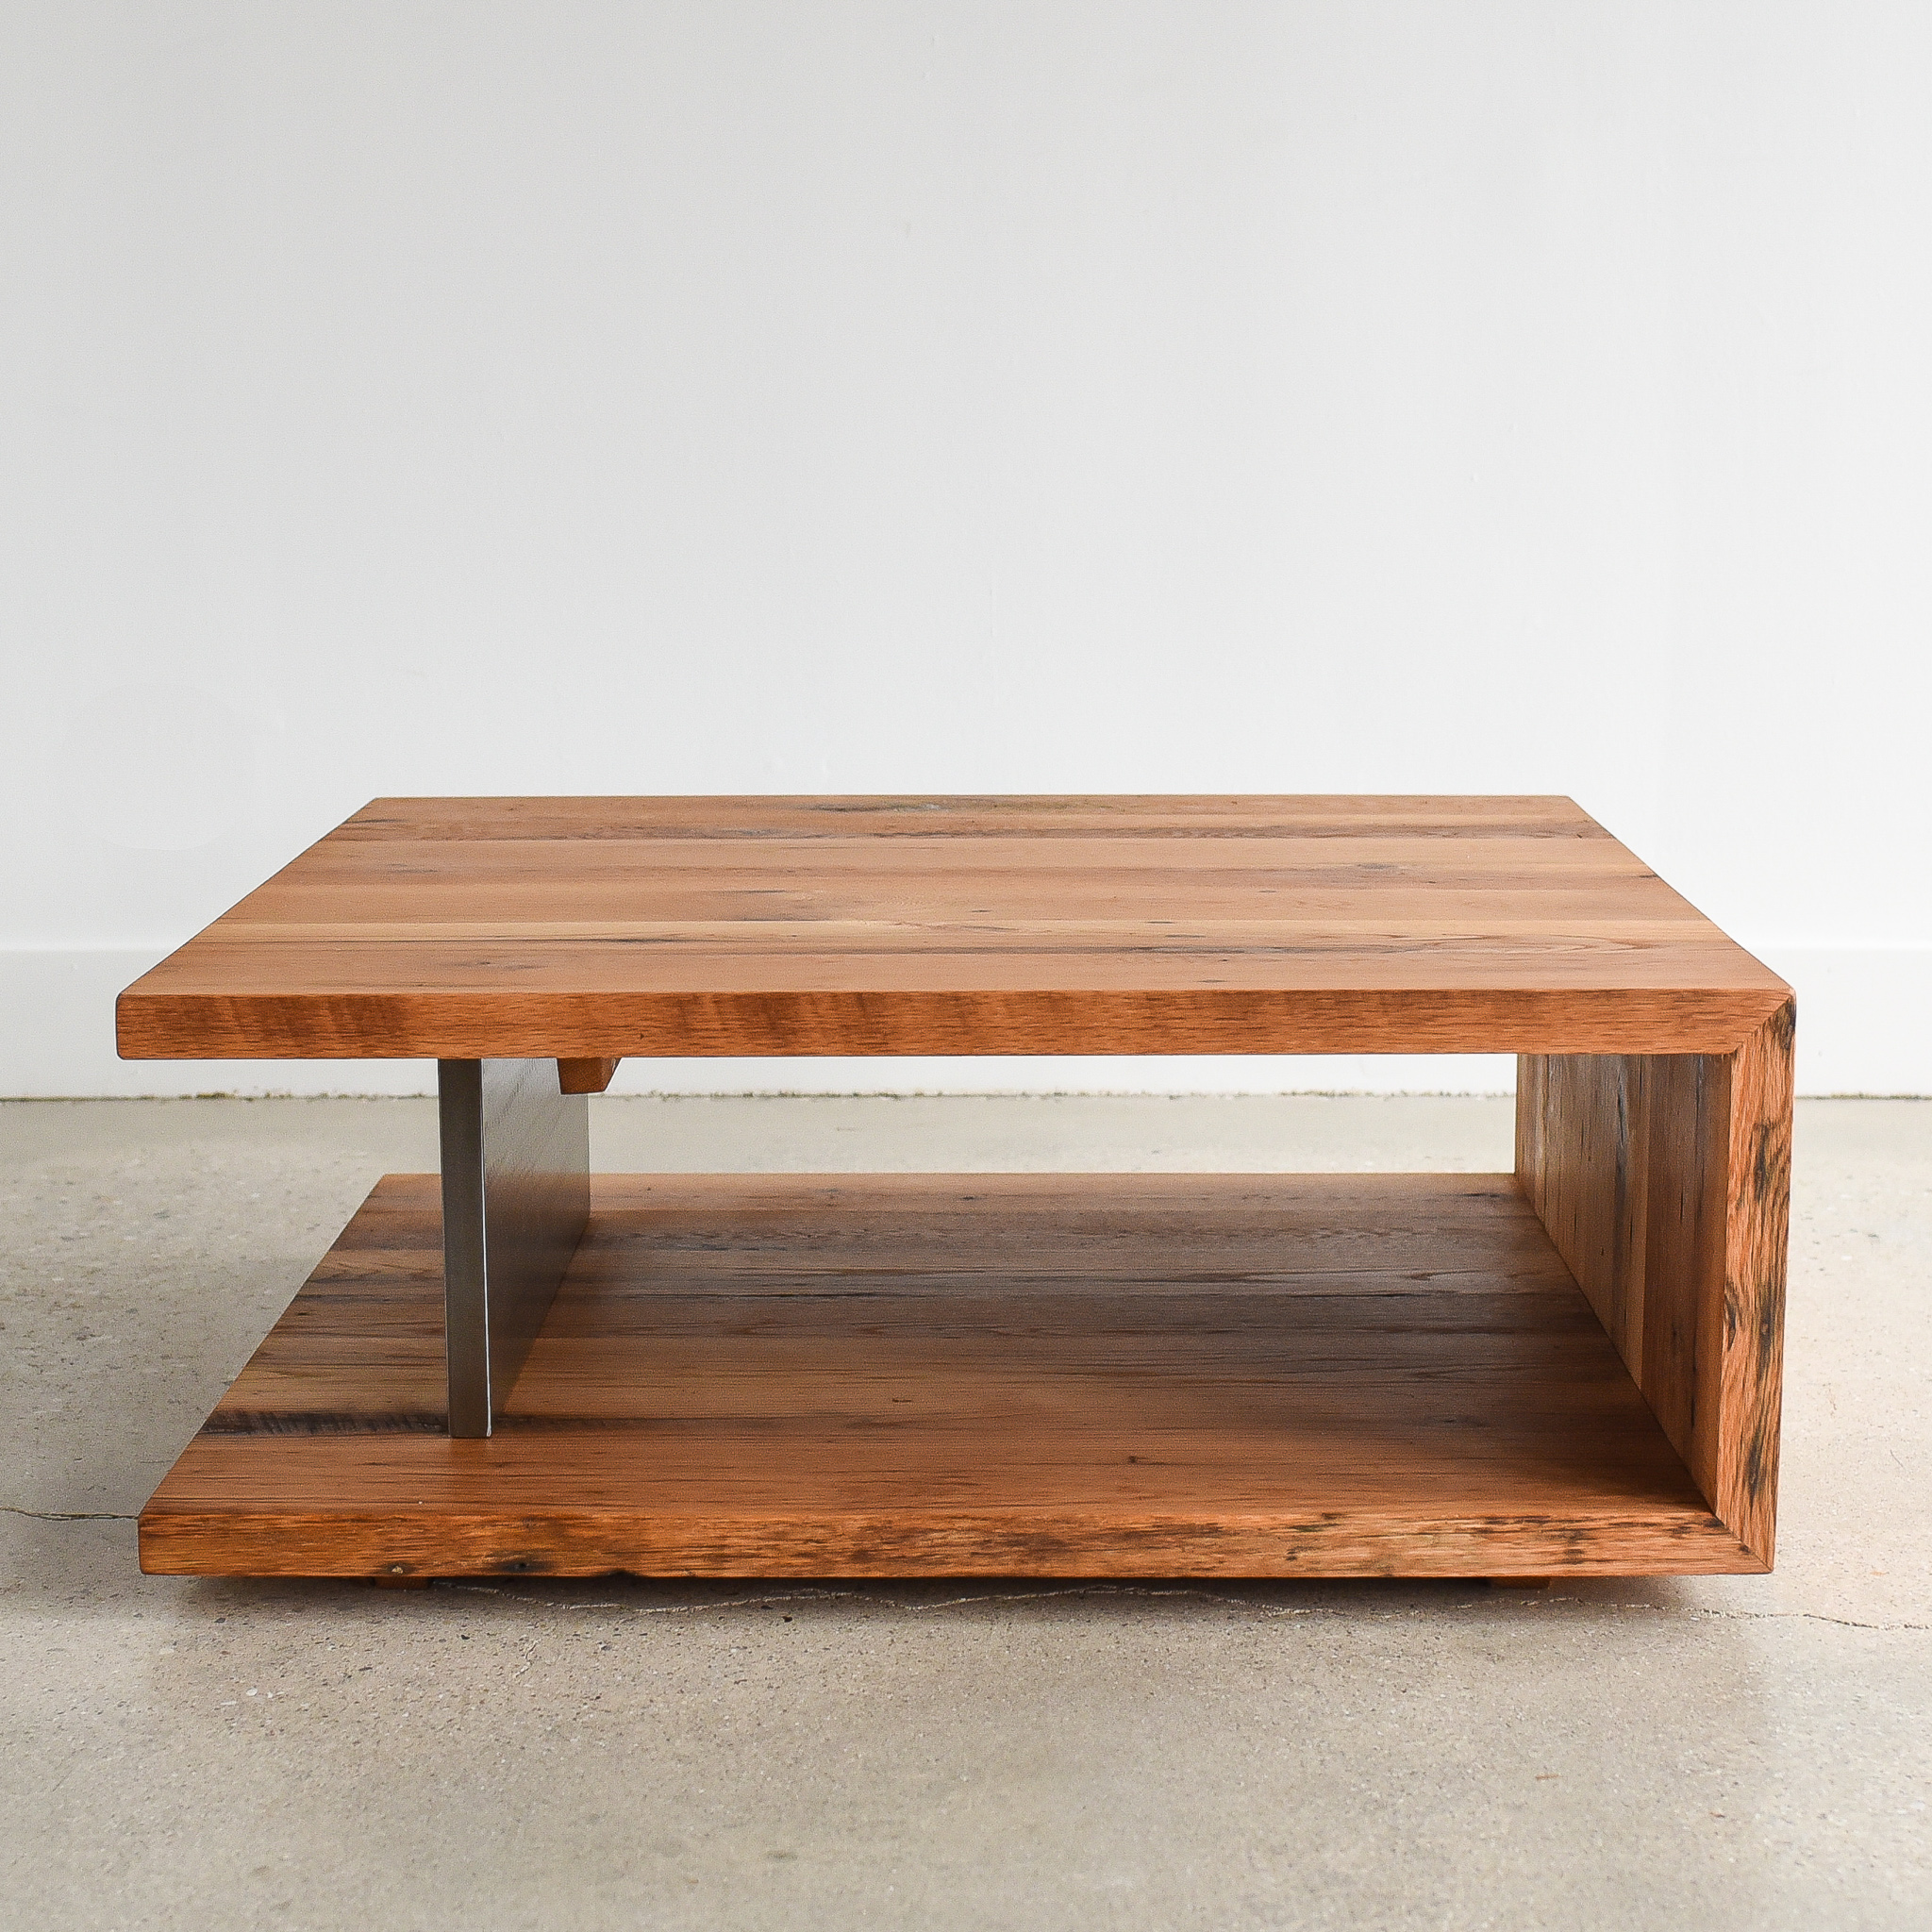 Modern Open Square Coffee Table What We Make